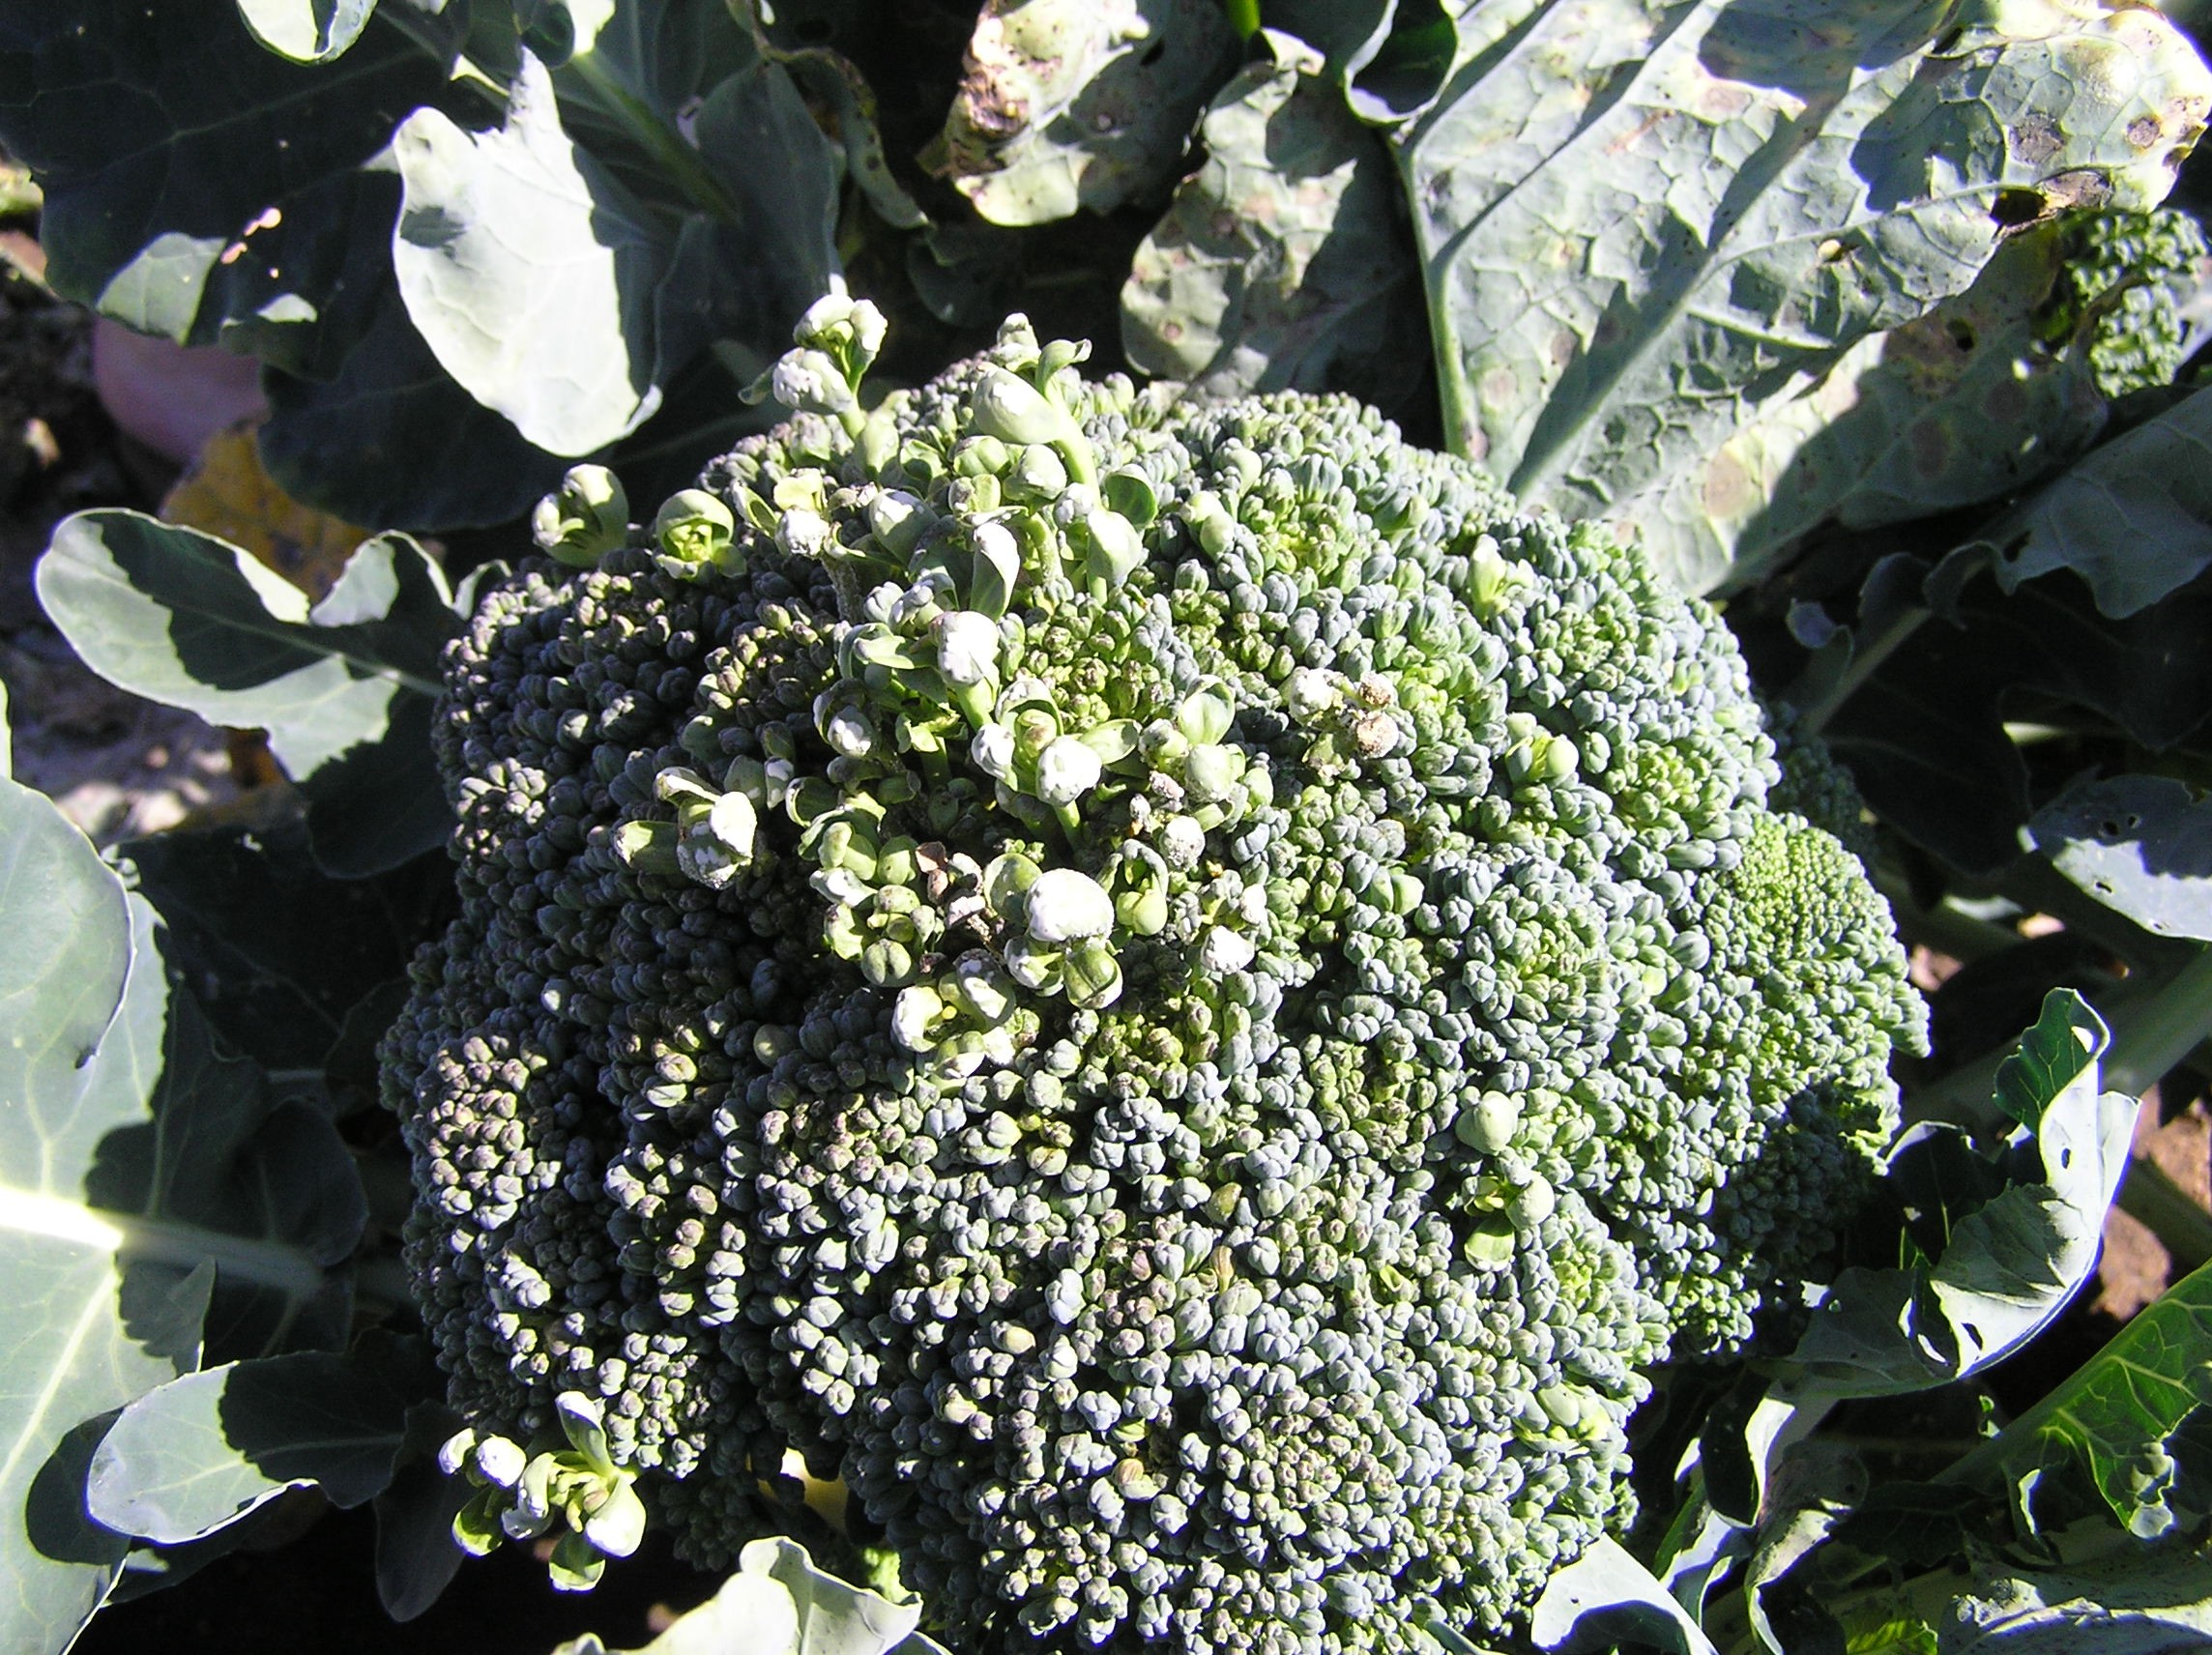 White Blister Disease In Vegetable Brassica Crops Agriculture And Food